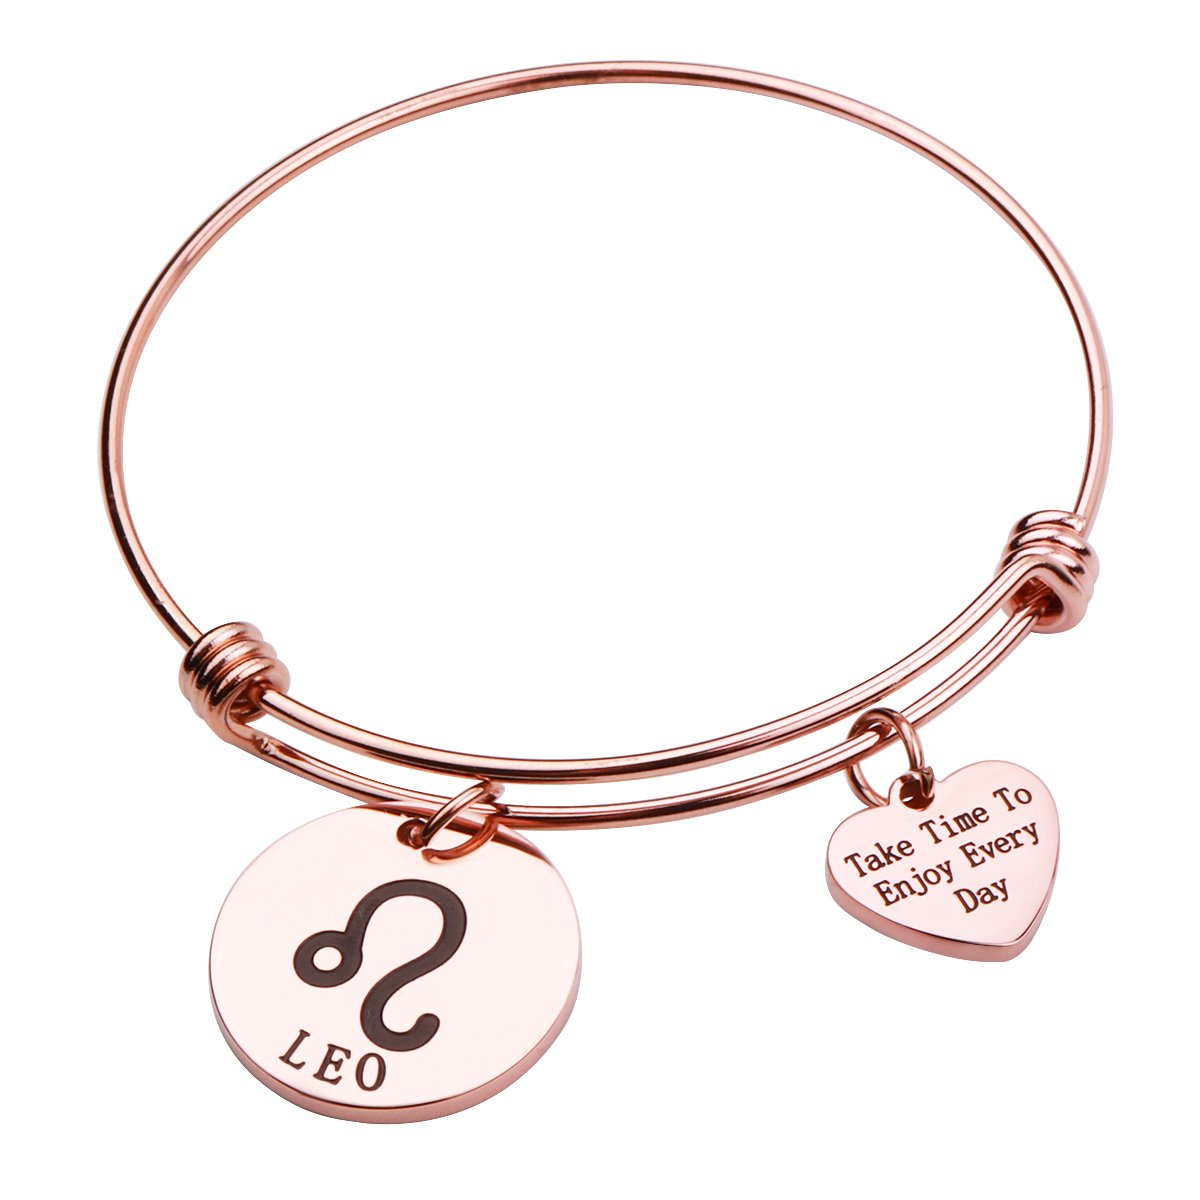 Rose Gold Zodiac Sign Bracelet Constellation Jewelry Gift for Her (Leo)